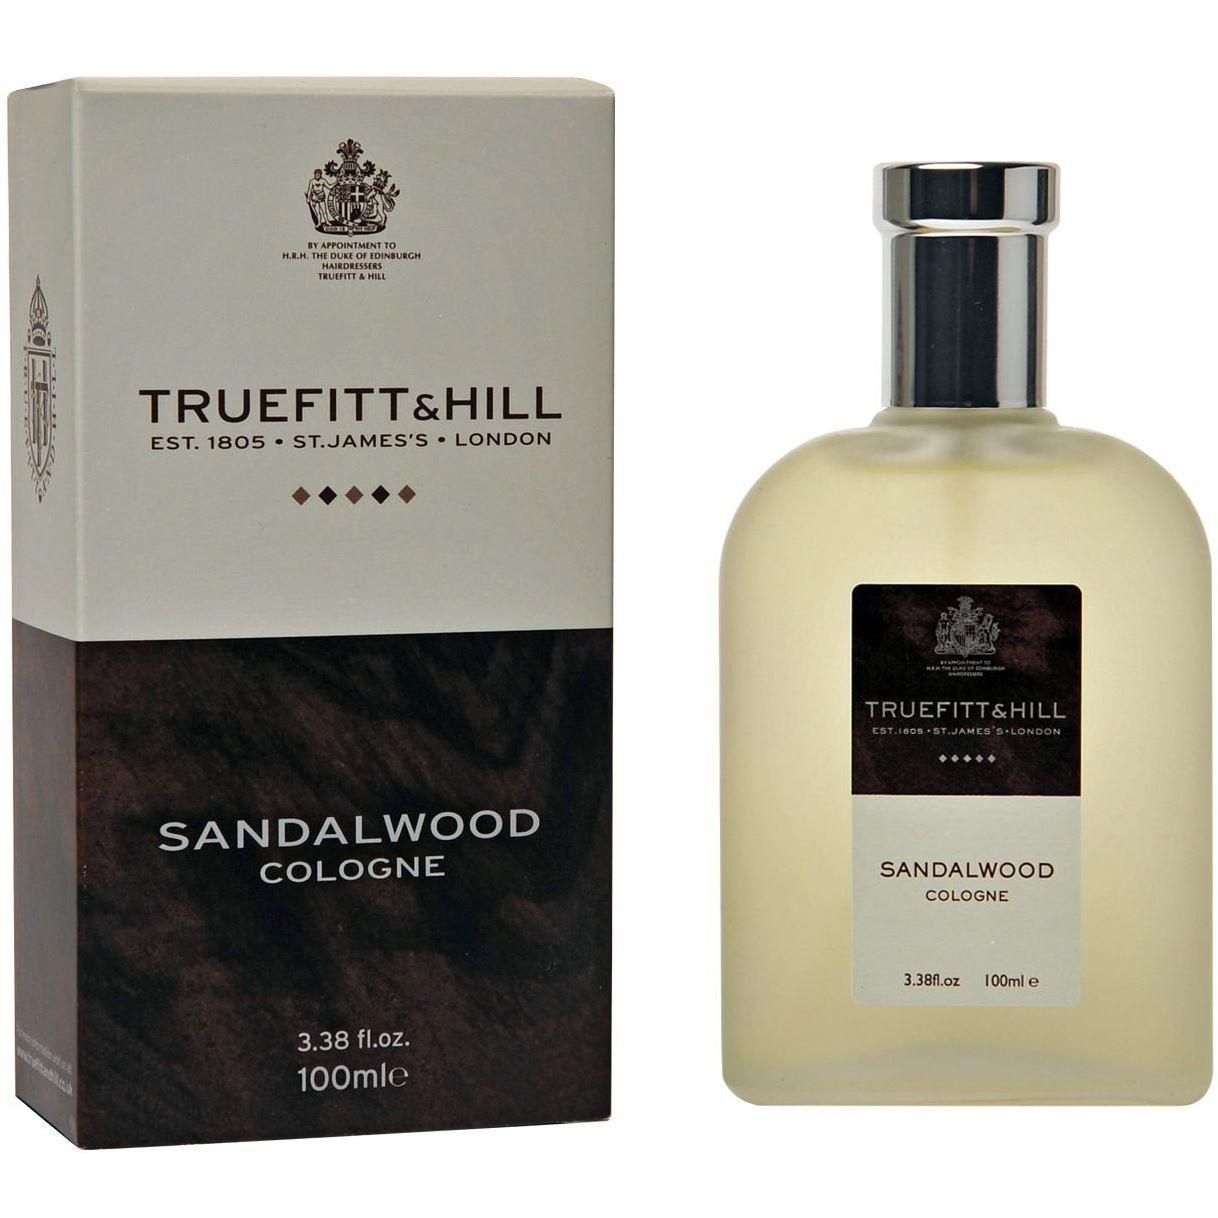 Truefitt & Hill Sandalwood Atomiser Spray Cologne